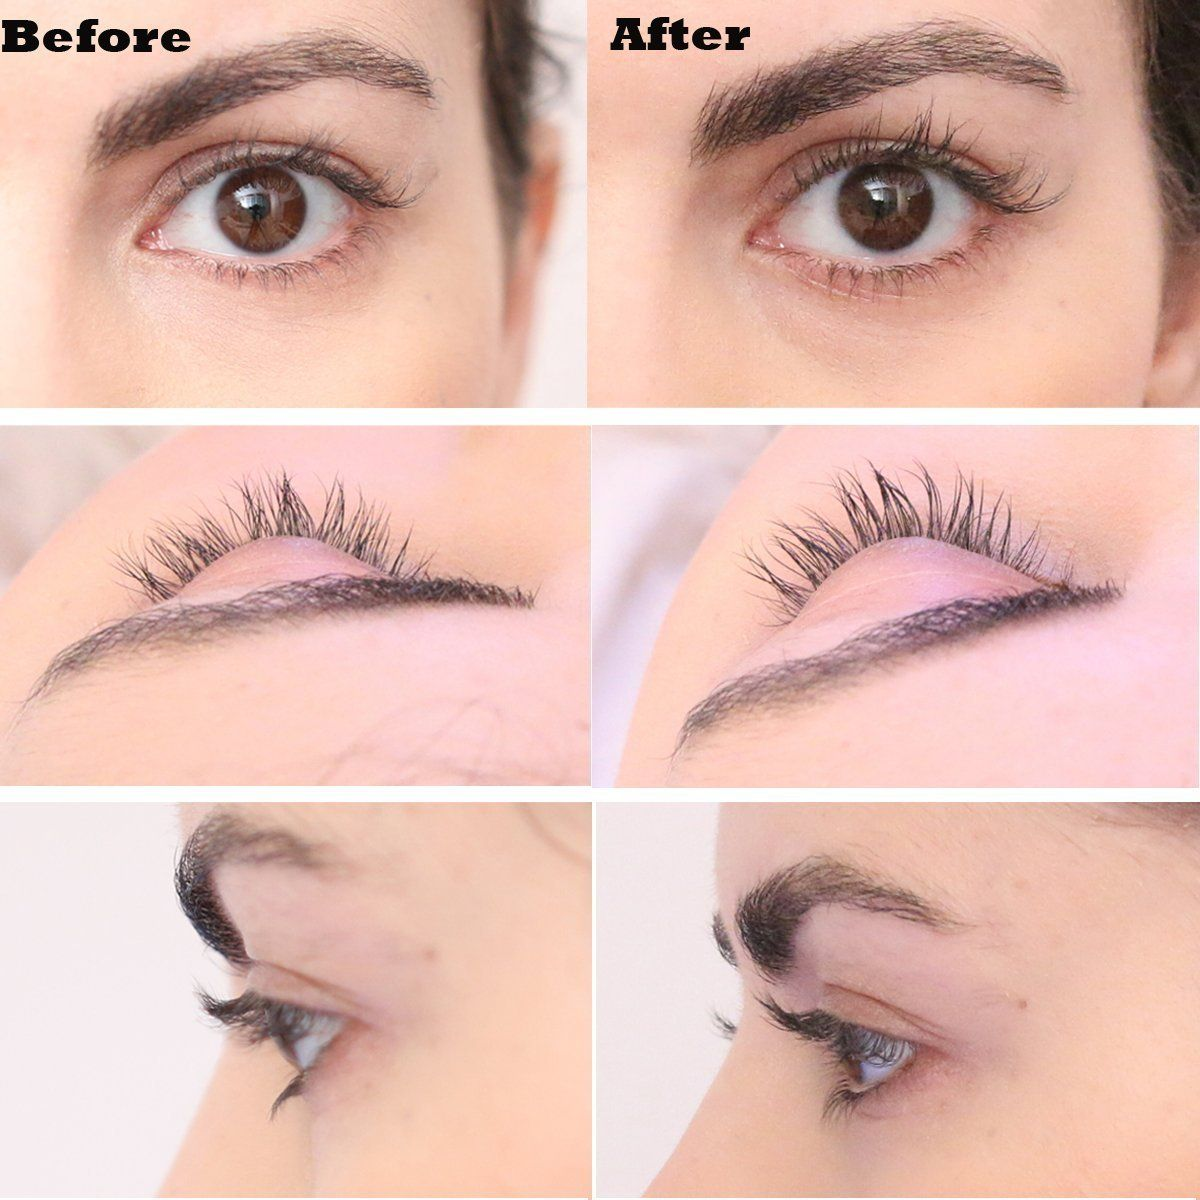 bd898c7985f [Advanced ] Eyelash Growth Enhancer and Brow Serum for Long ALIVER Natural  Lash and Brow Booster Serum Liquid Enhancer Stimulate Regrowth Prevents  Thinning ...